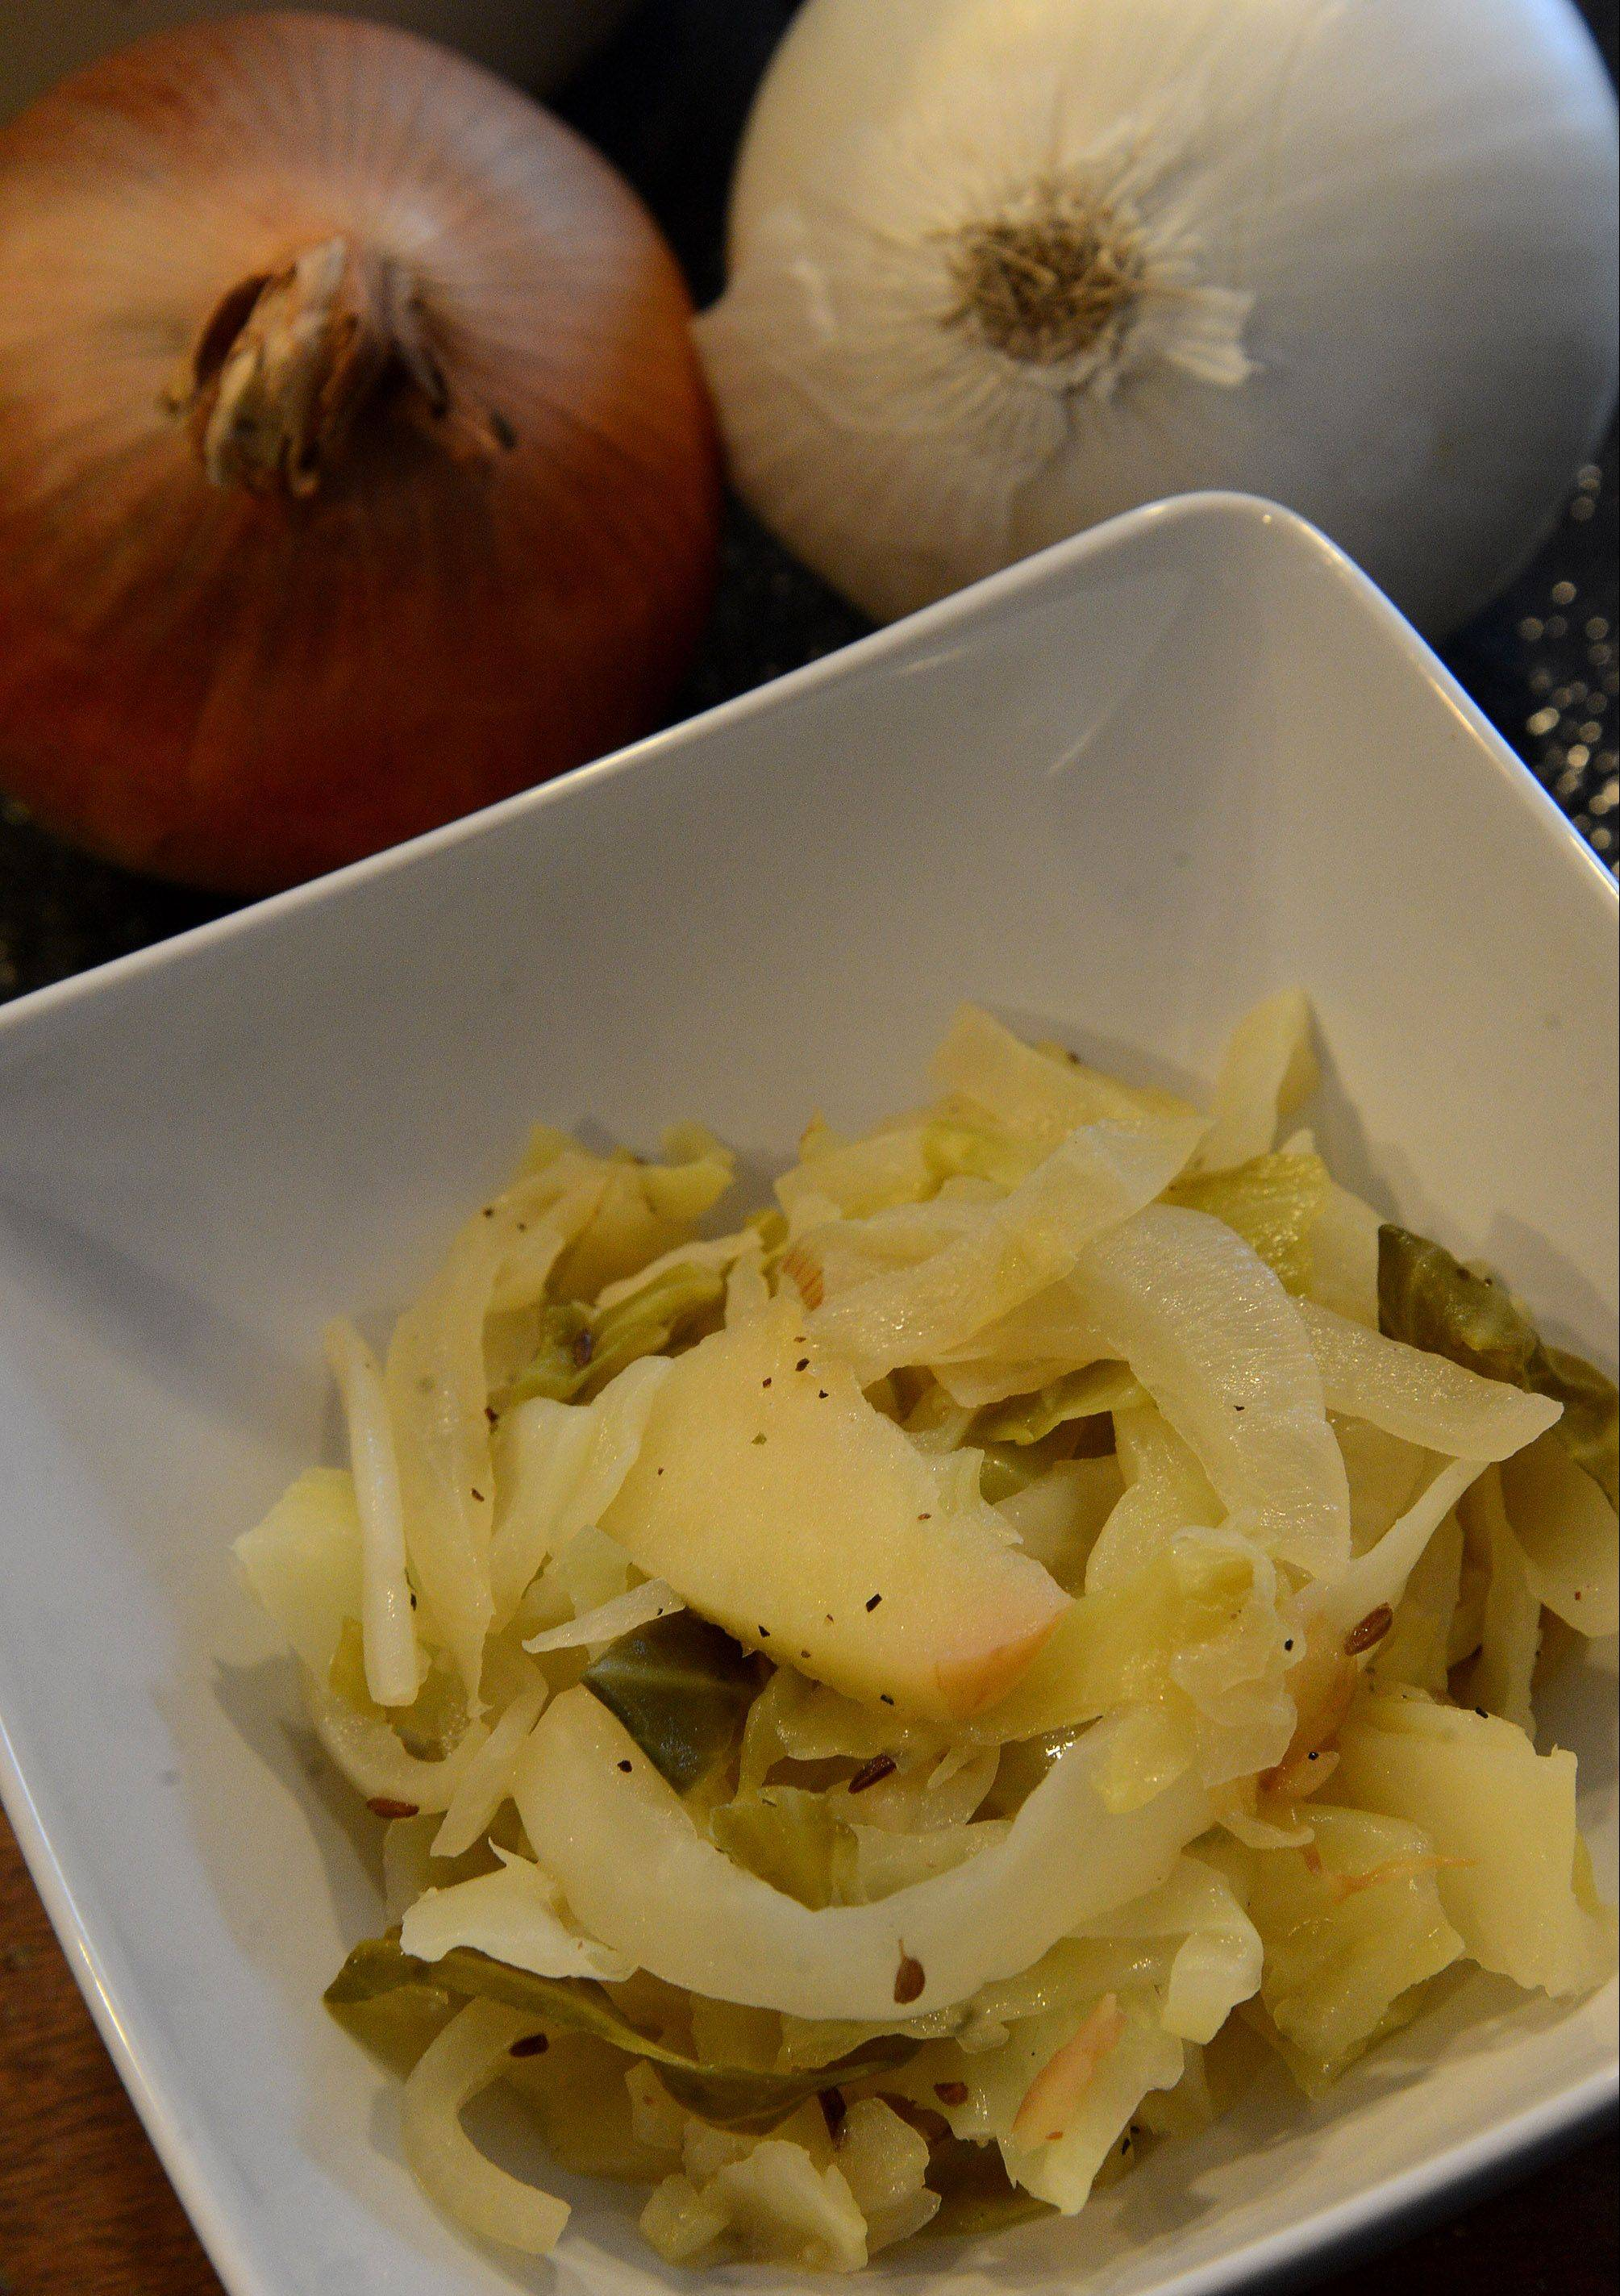 Enjoy onion's healthful attributes in an autumnal dish of sauteed cabbage, onions and apples.